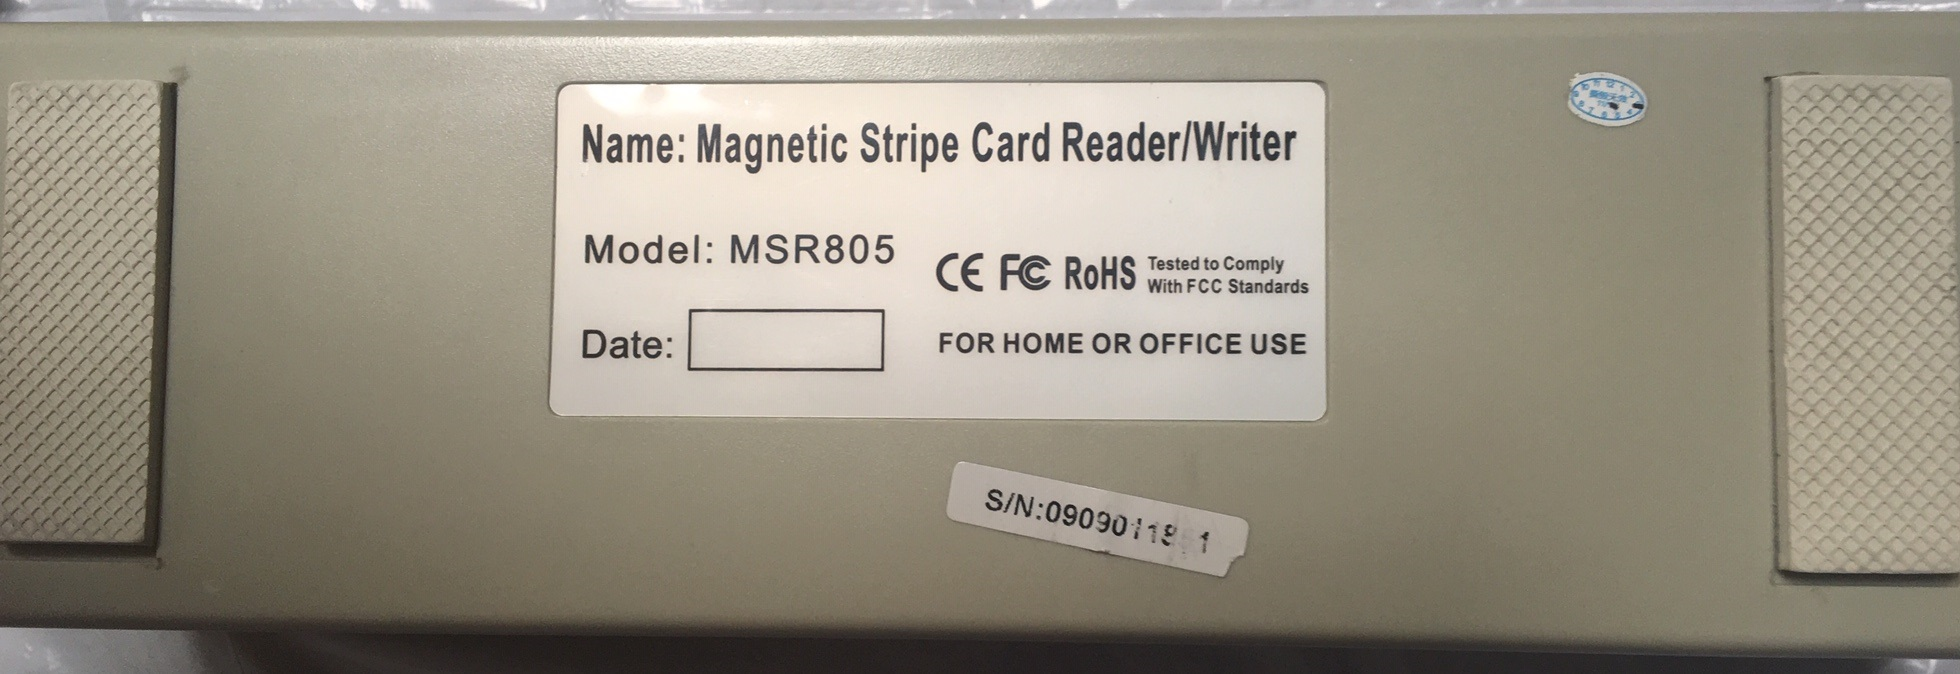 MSR805 Magstripe Reader/Writer